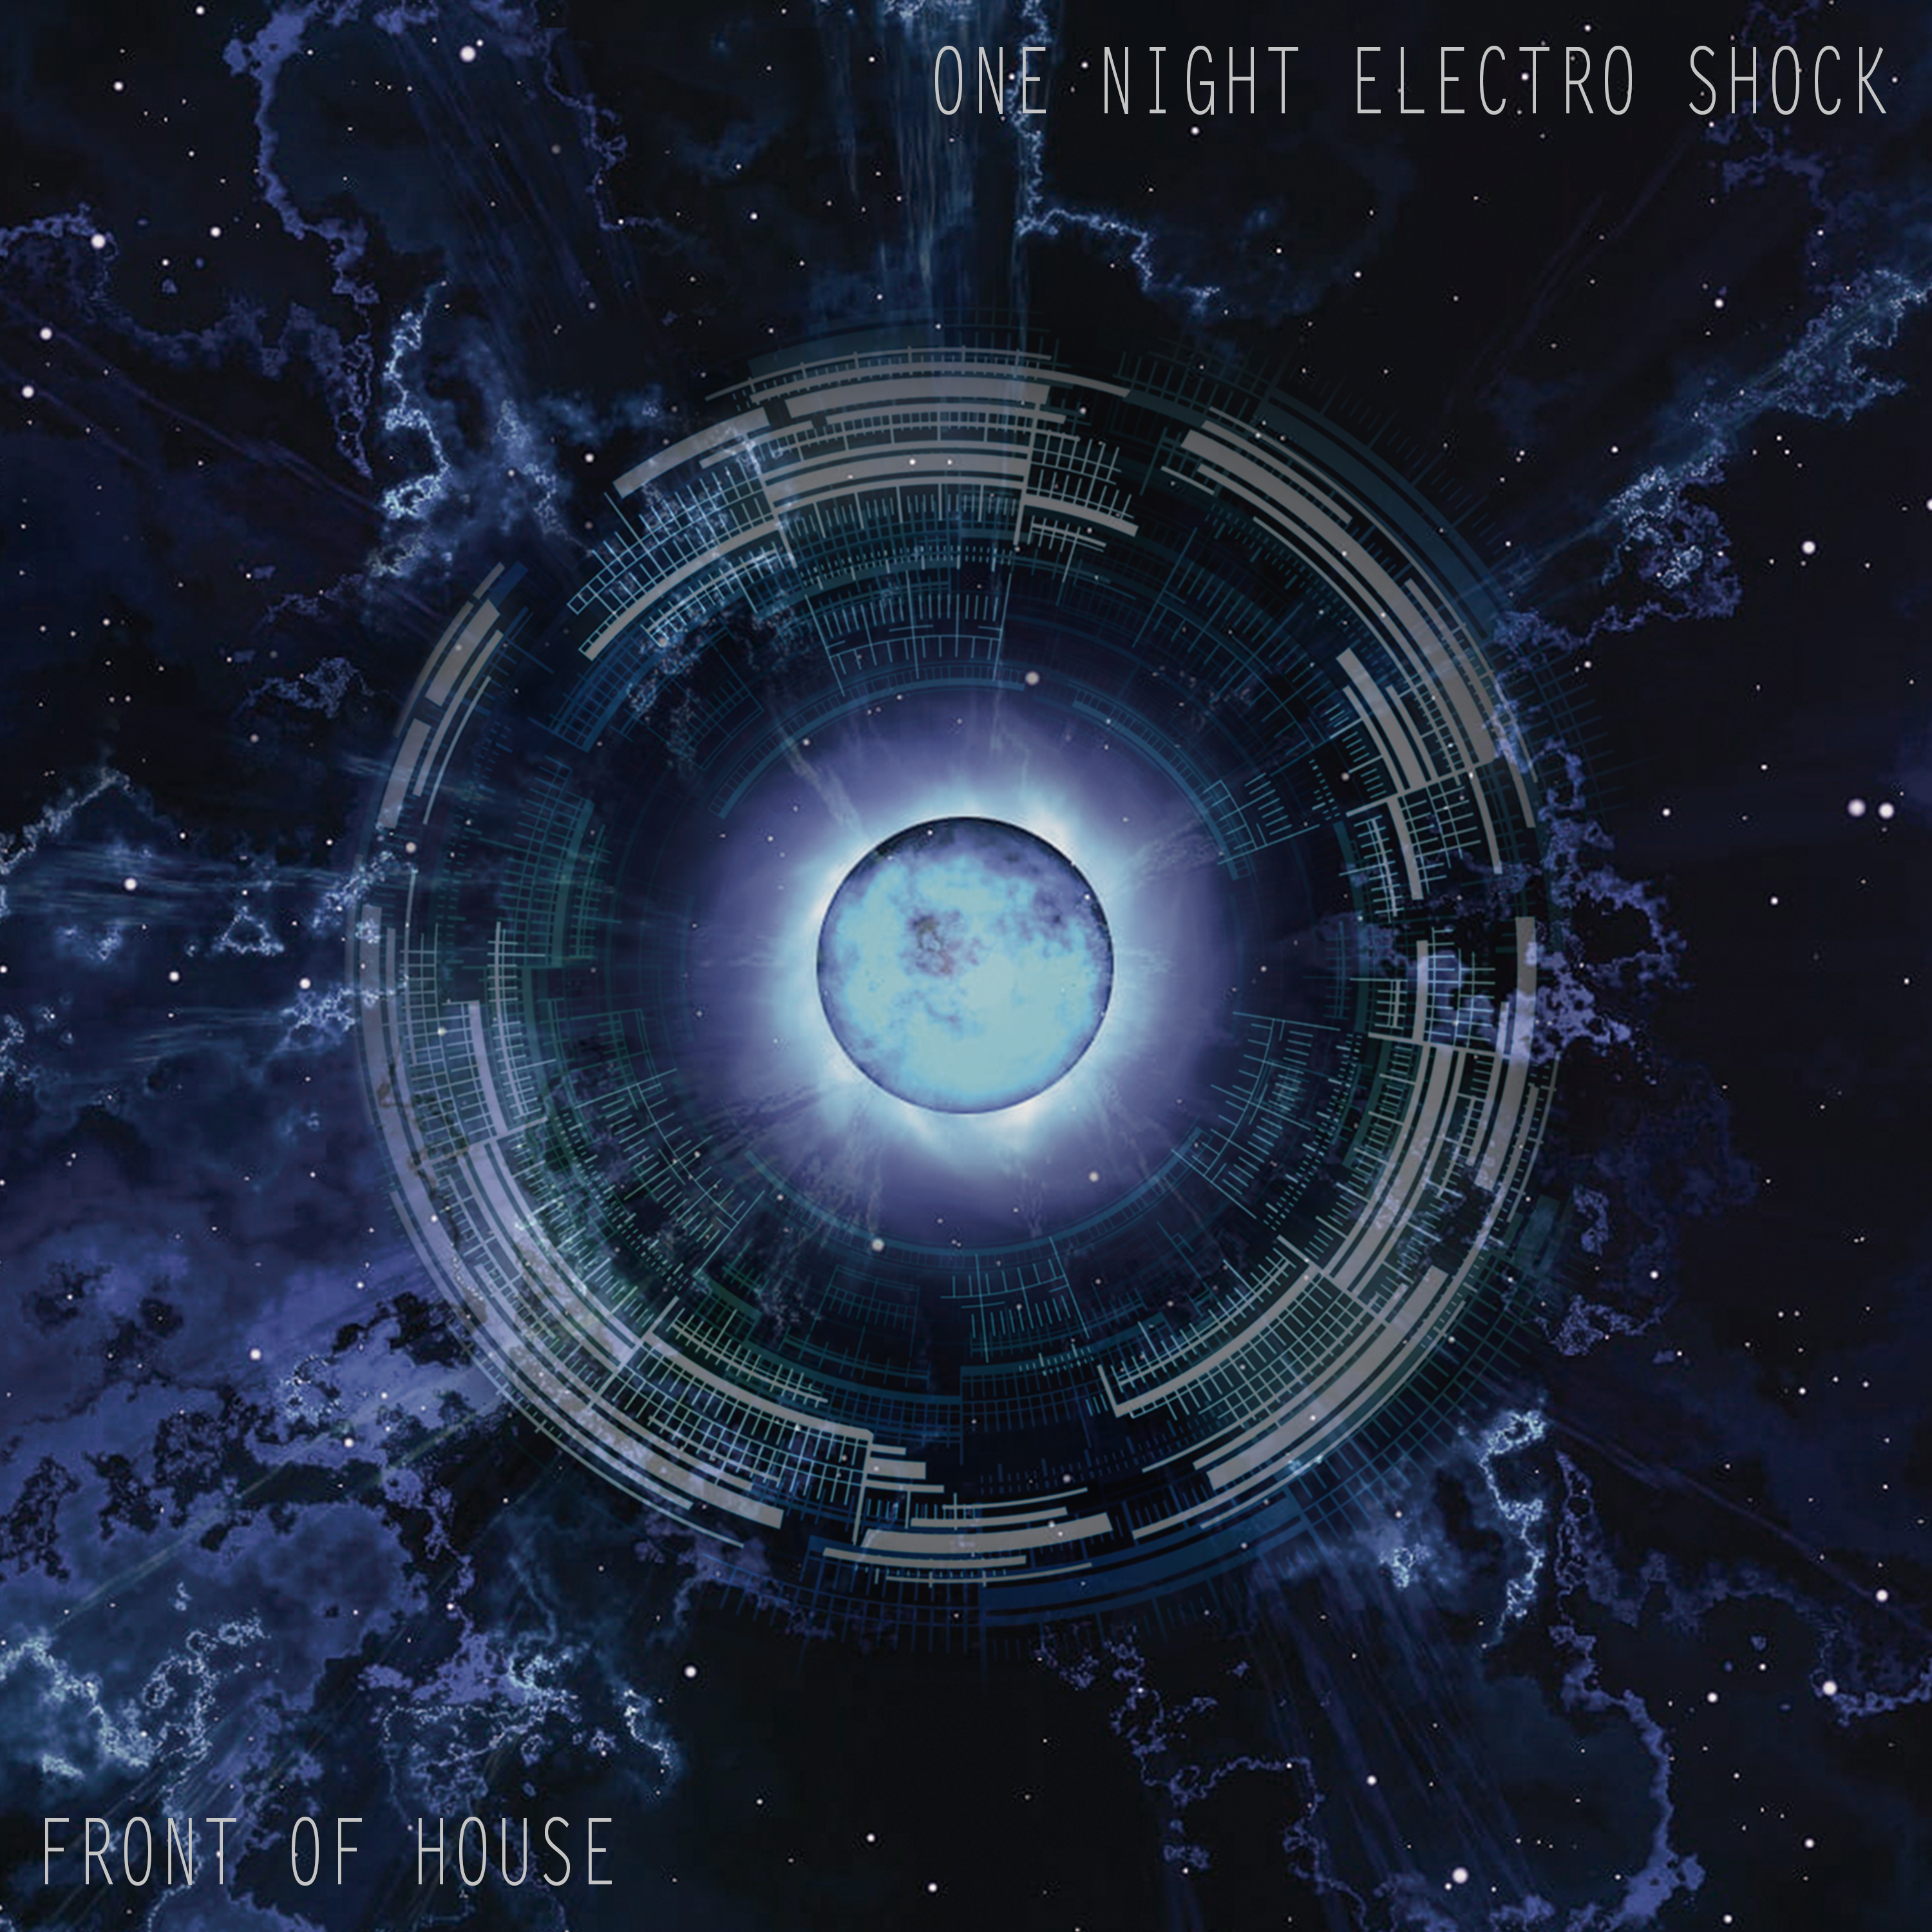 One Night Electro Shock